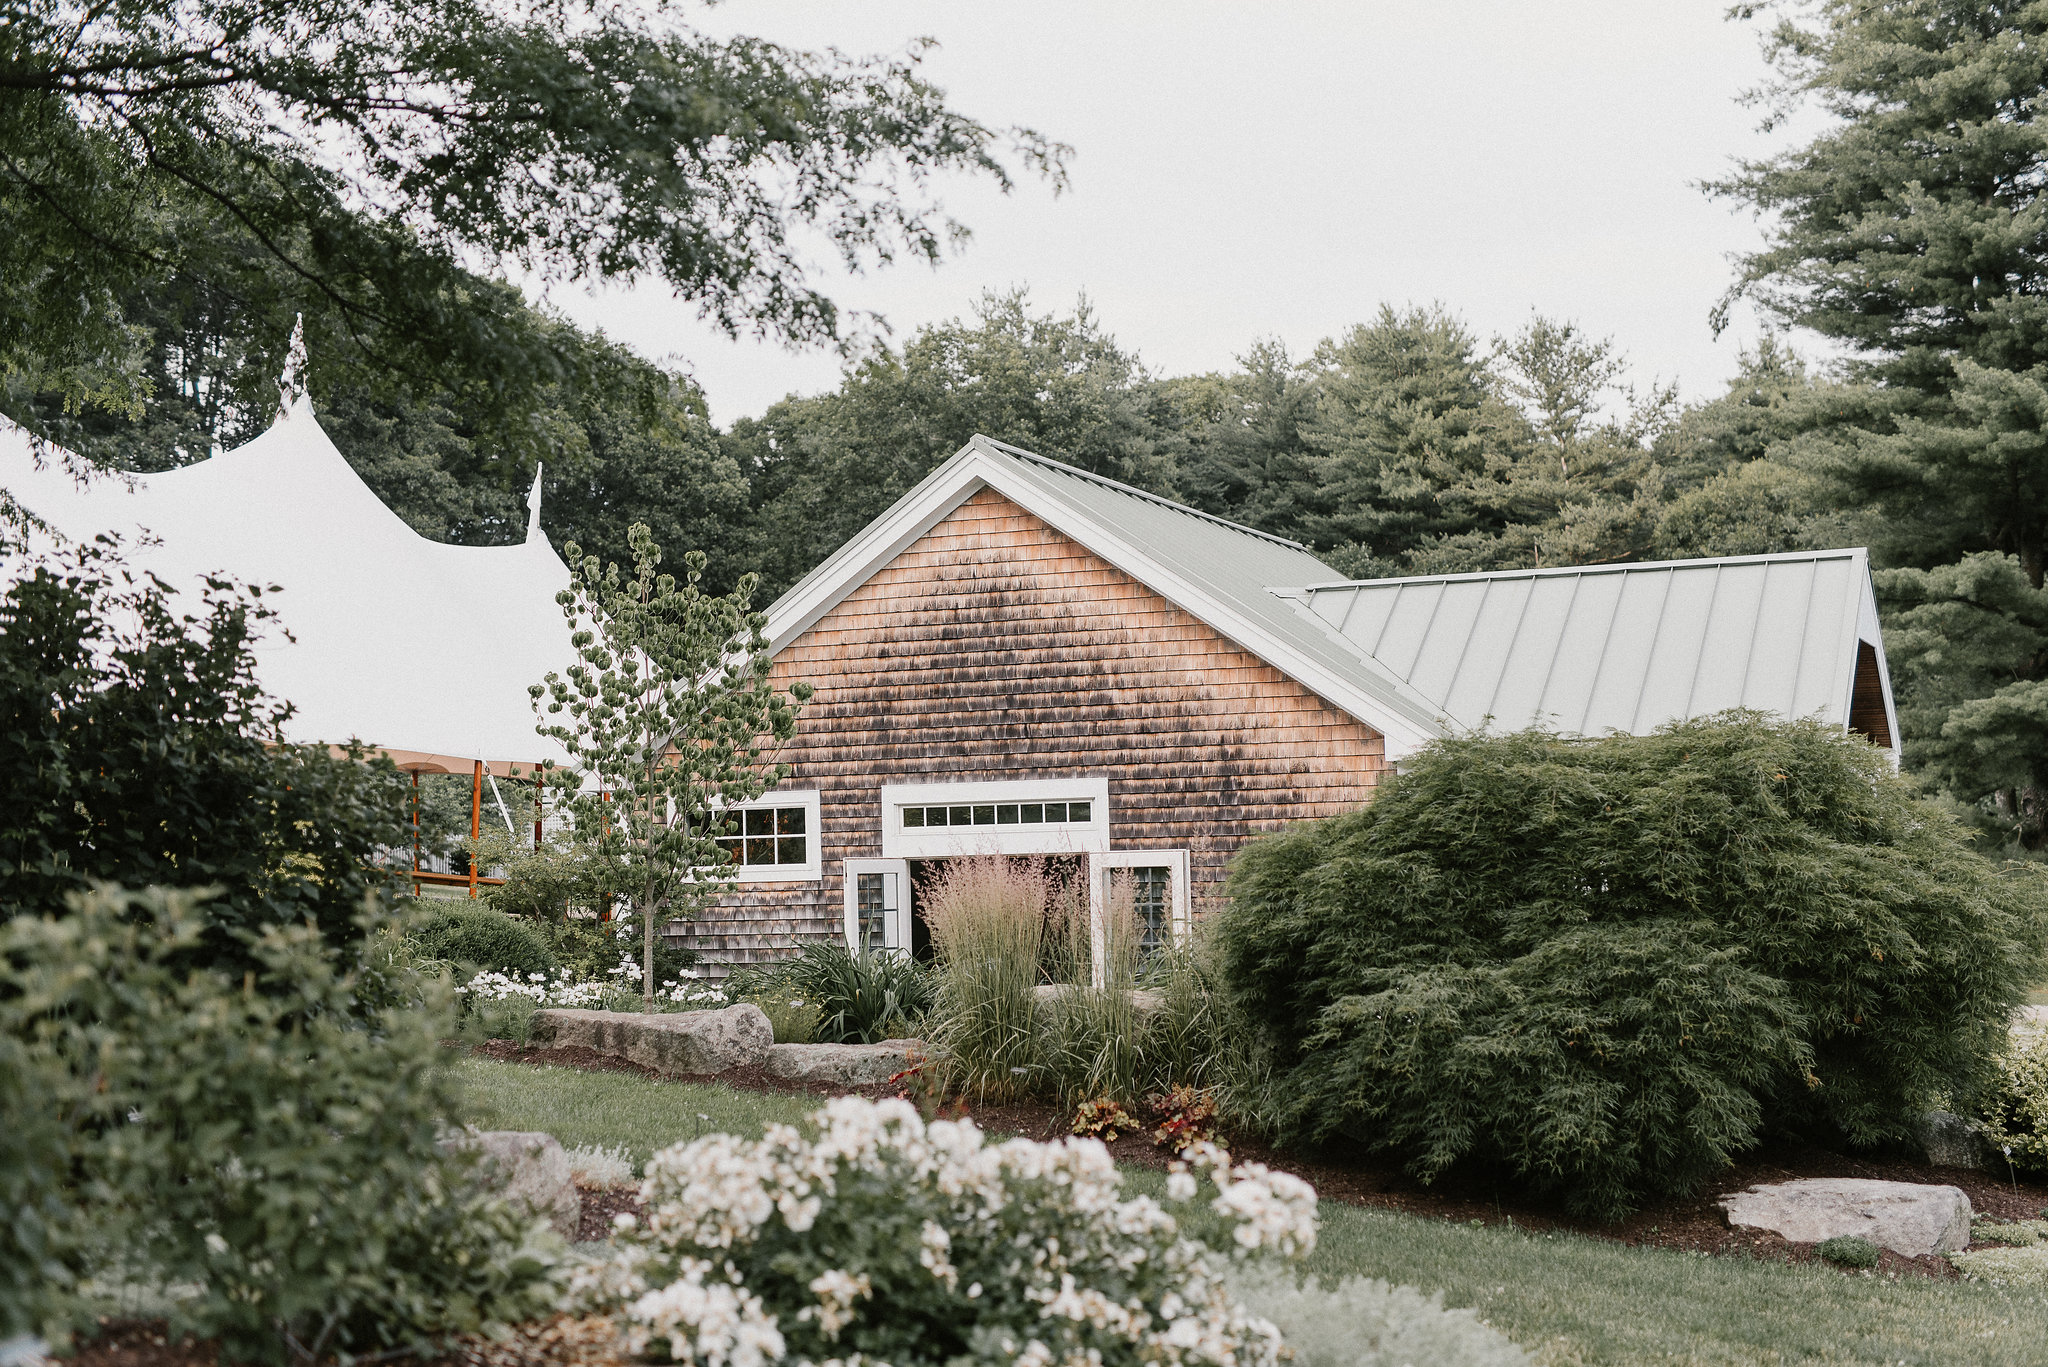 Custom Event Catering Blog Peppers Artful Events Sound Home Inspections Inc Ct And Ri On Wiring A House For Romance Elegance At The Gardens Uncanoonuc Mountain